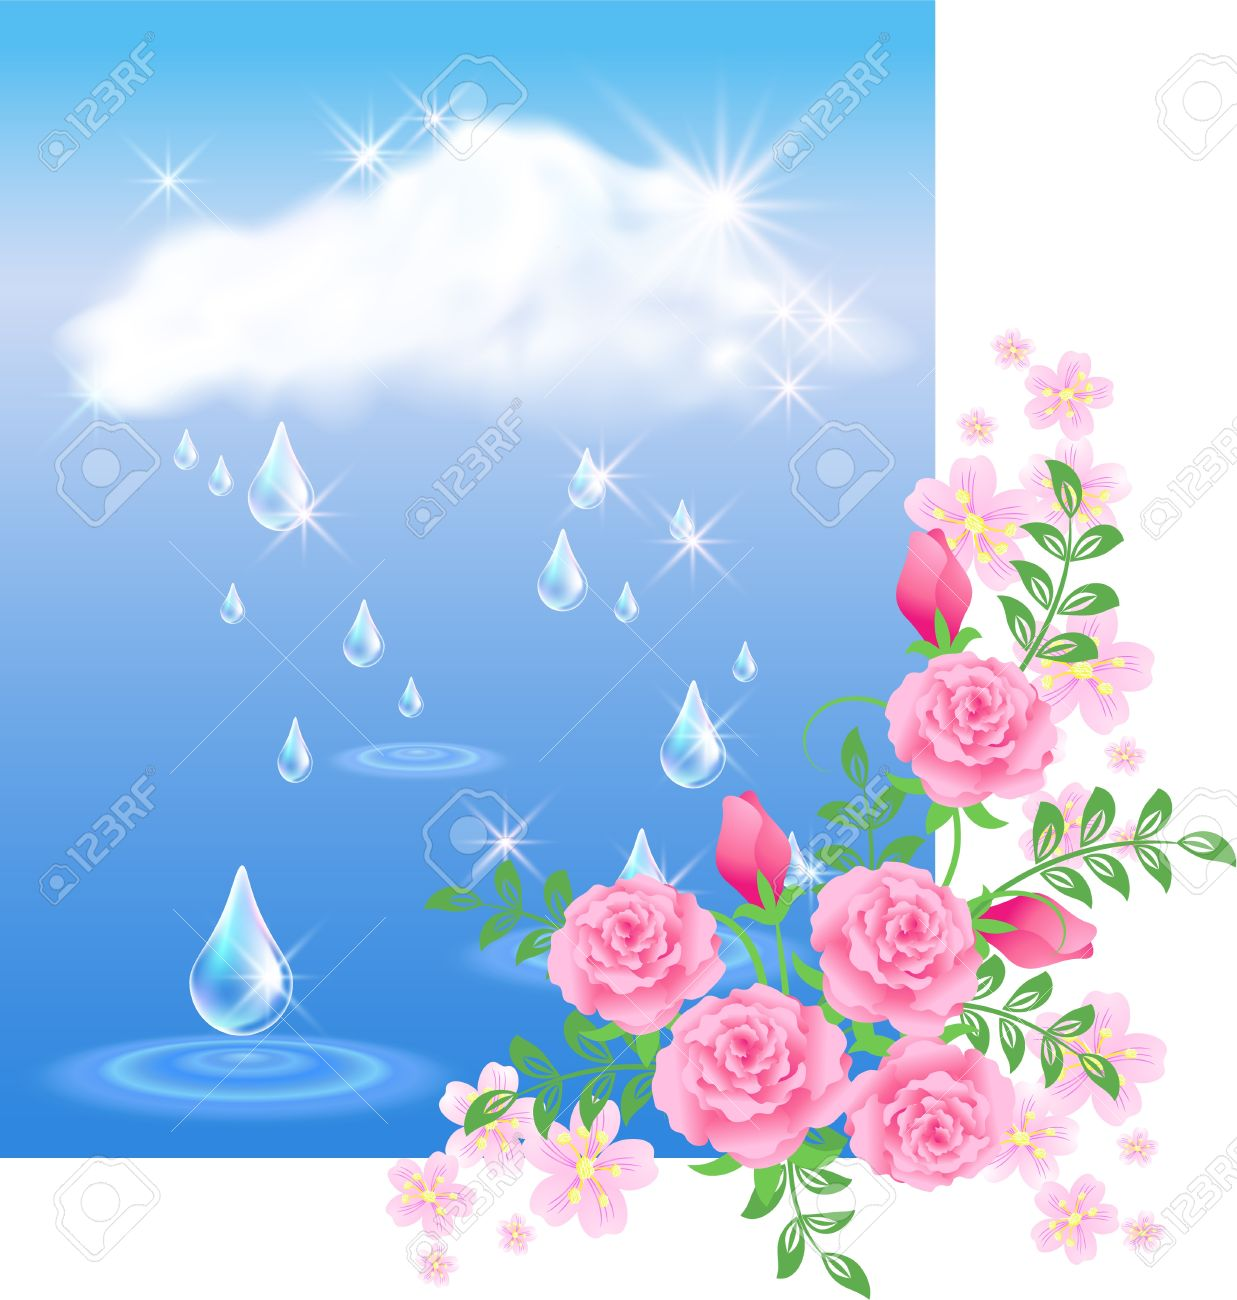 Rain In The Dark Blue Sky And Roses Royalty Free Cliparts, Vectors.